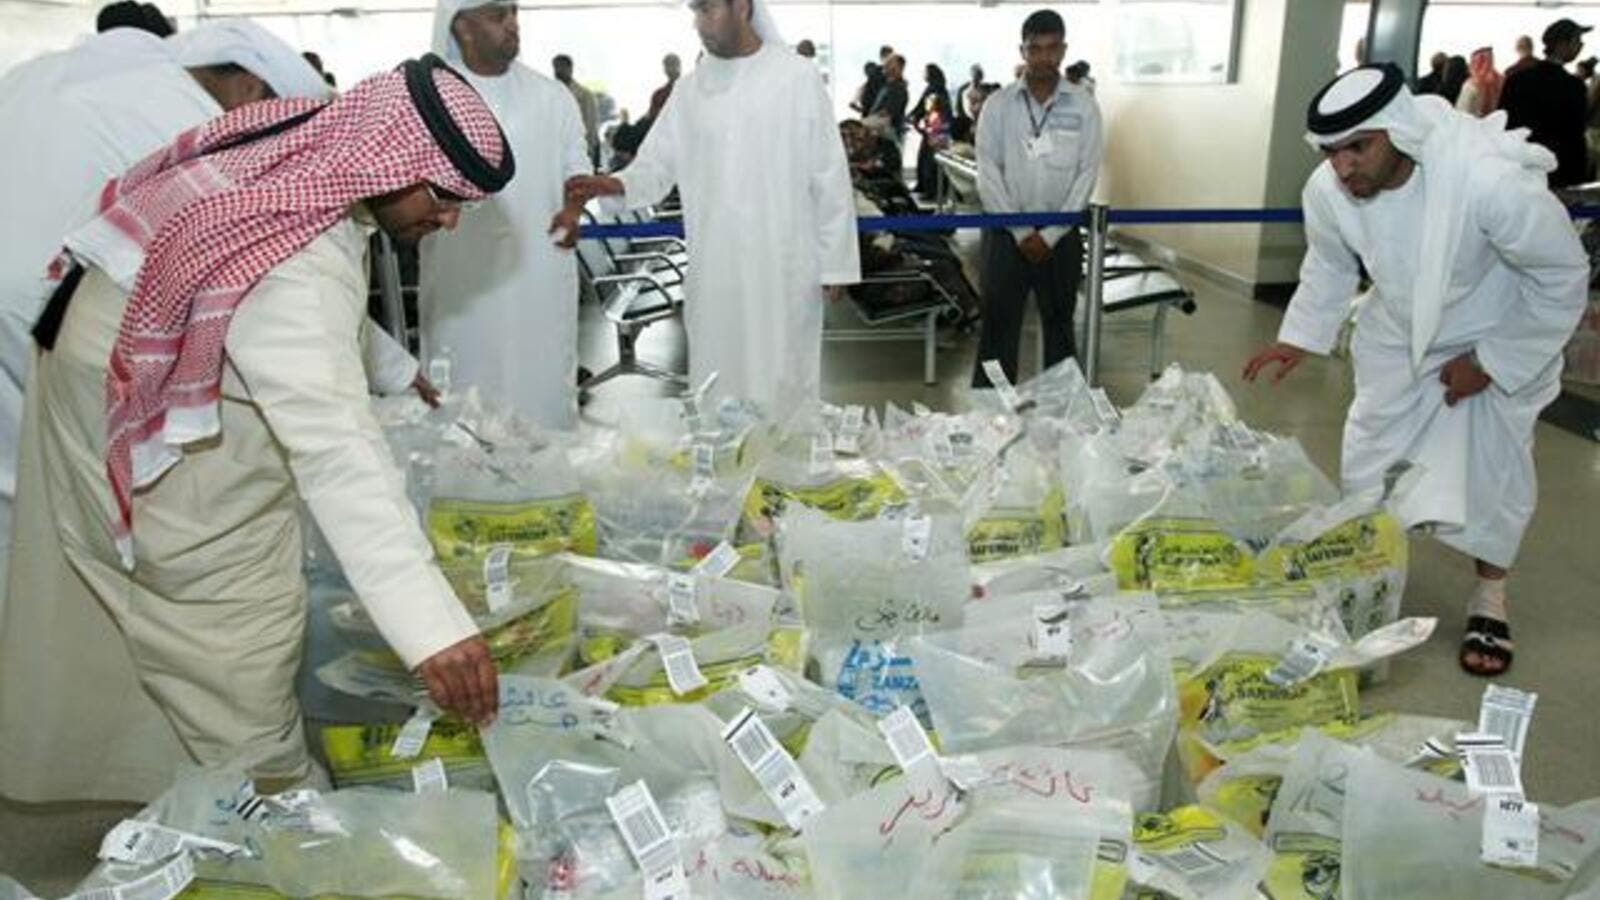 Saudis examine water samples from the Zamzam Well to check for contamination. (AFP/File)